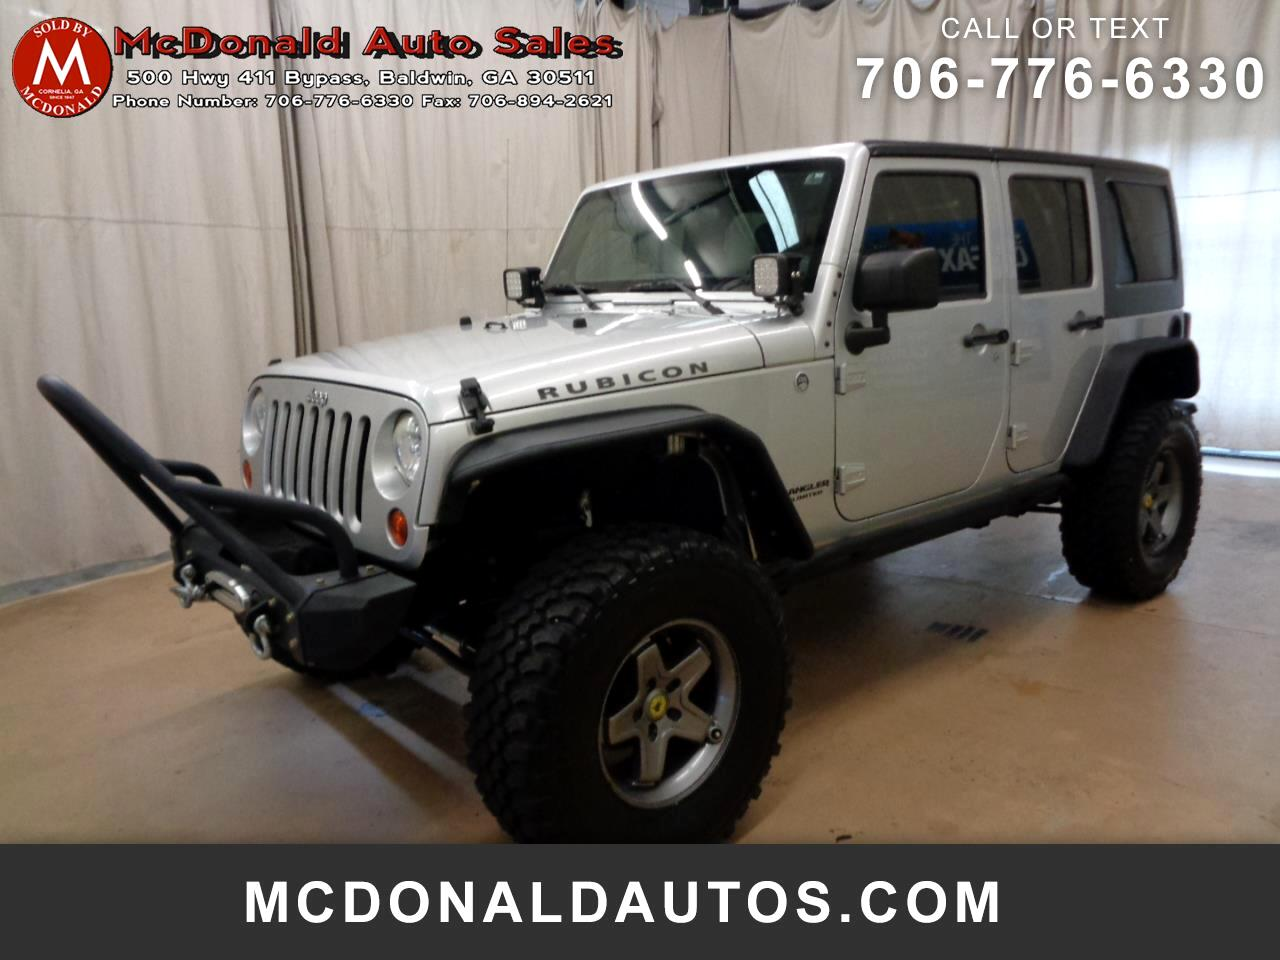 Jeep Wrangler Unlimited Rubicon 4WD 2012